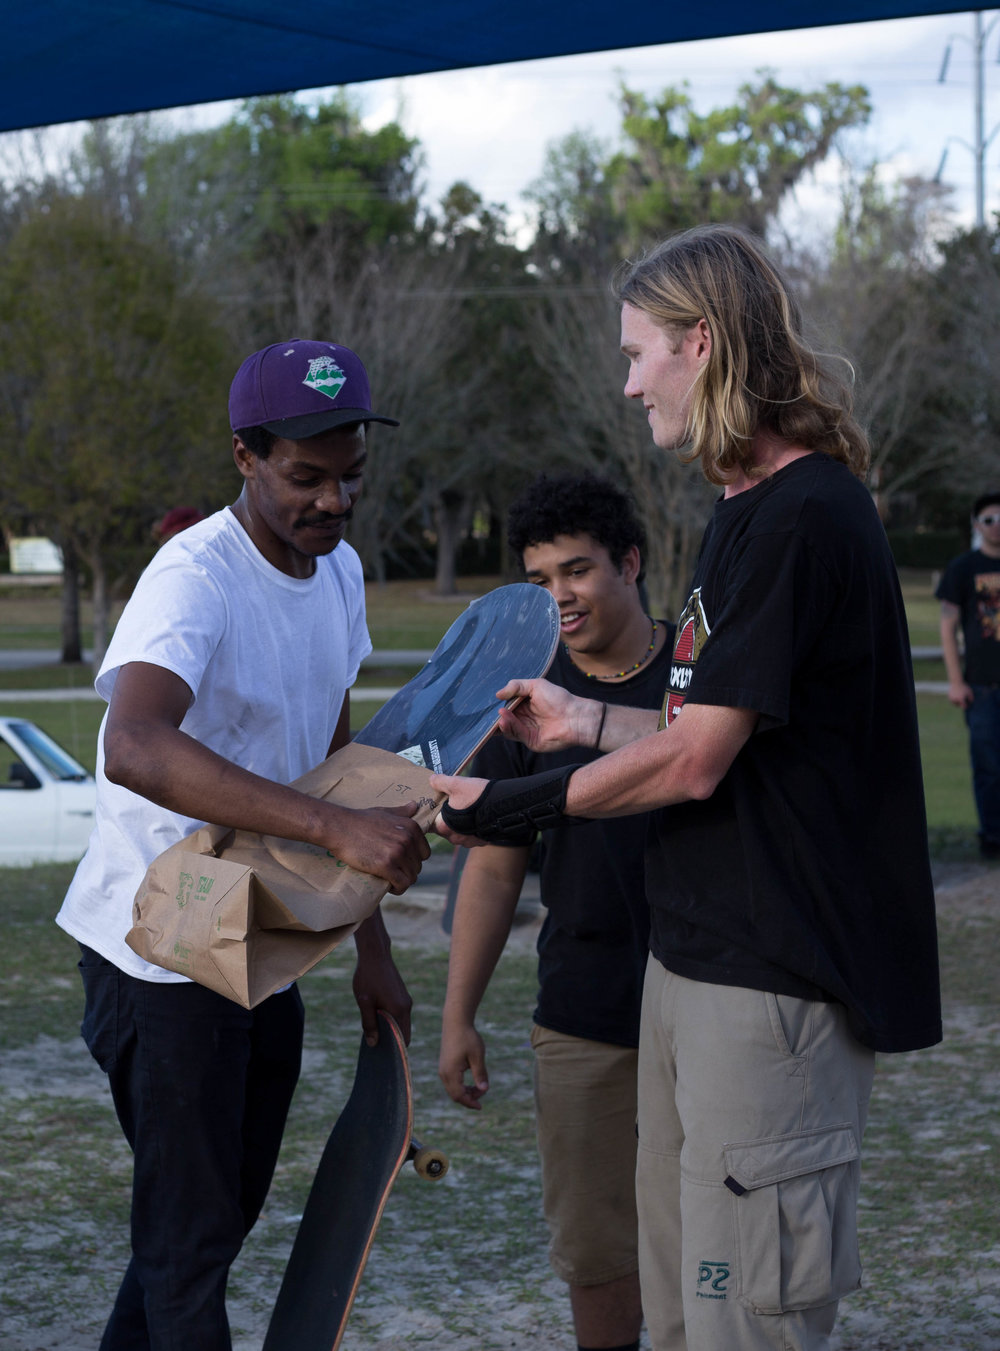 Dante DeBose get hooked up! Gator Skate Club member, Patrick Lynch, passes the product.